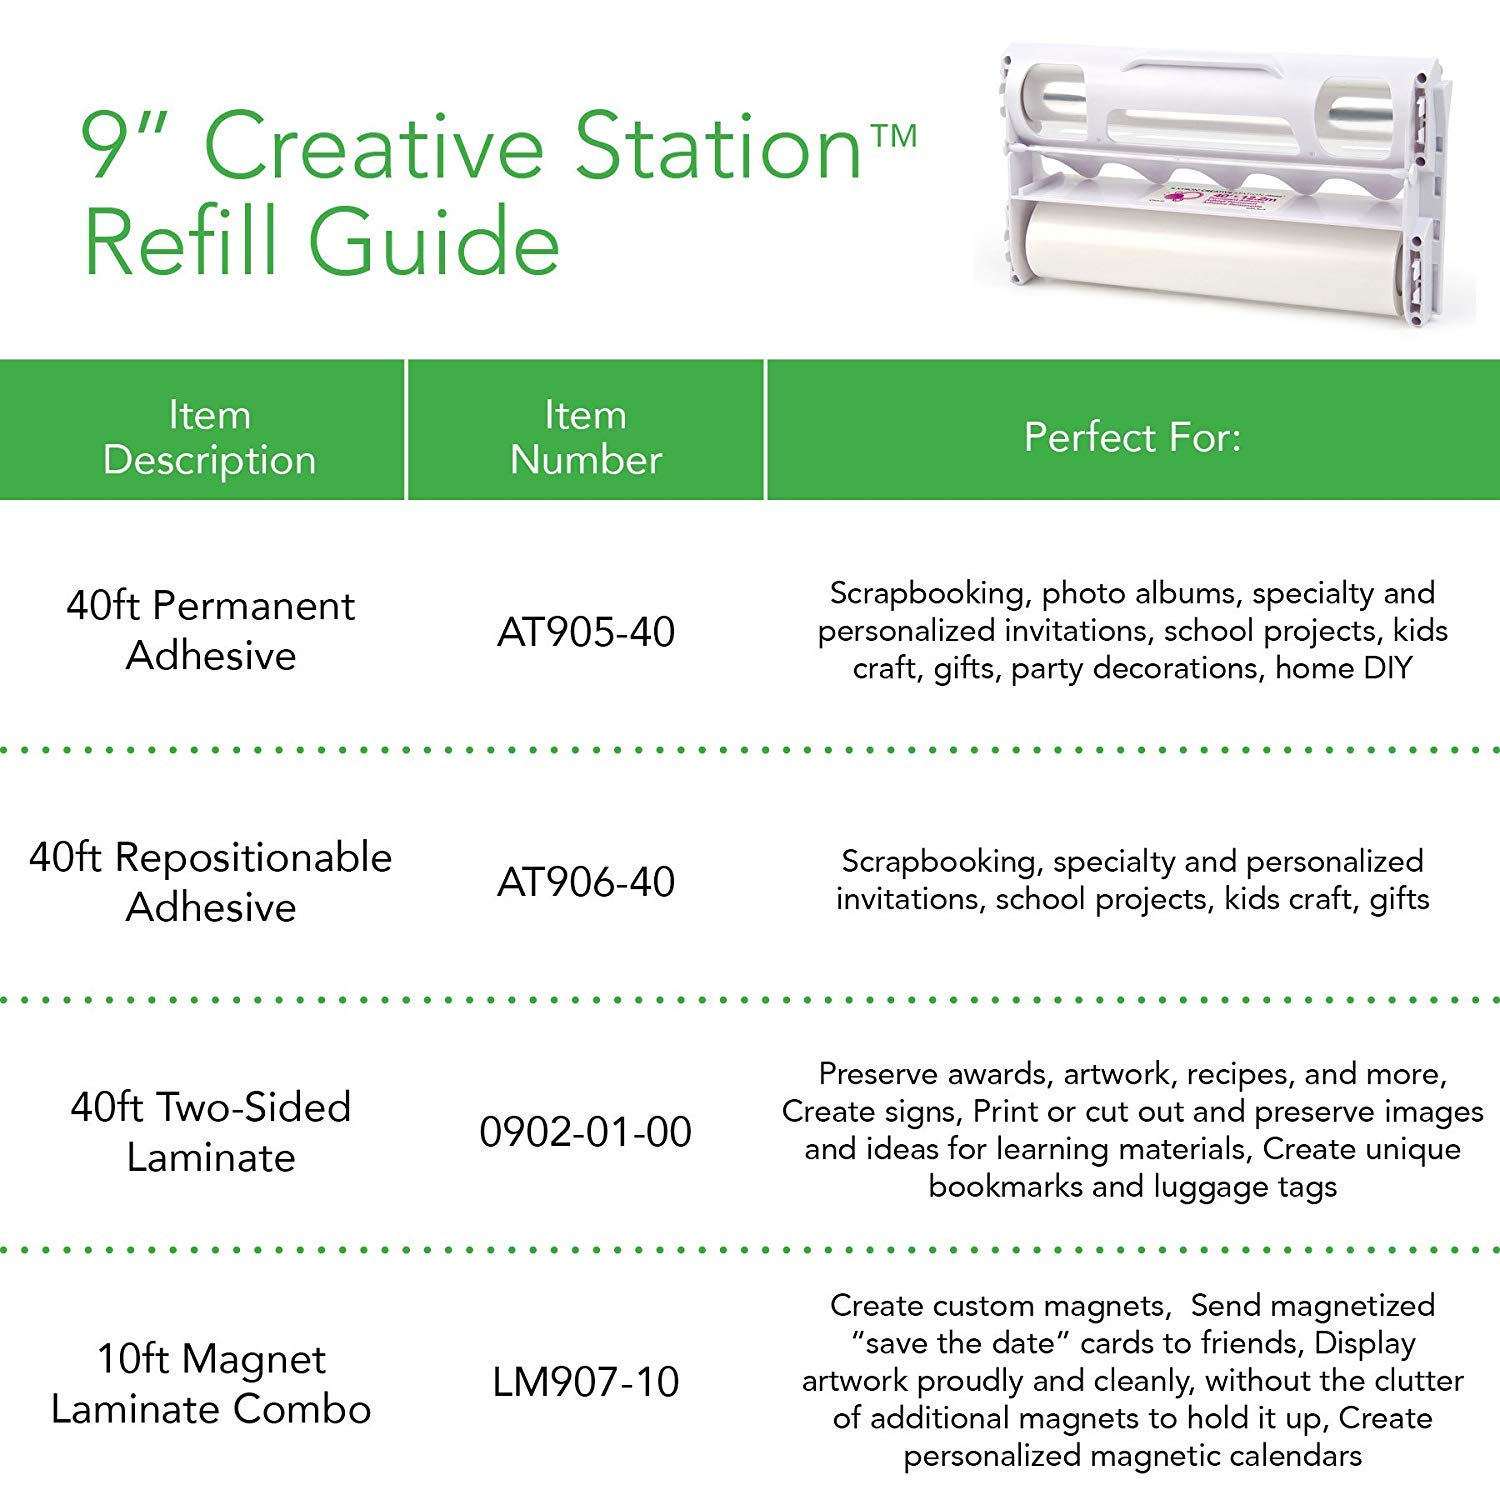 Xyron Acid-Free Permanent Adhesive Refill Cartridge for the 9-Inch Creative Station, 40-feet AT905-40